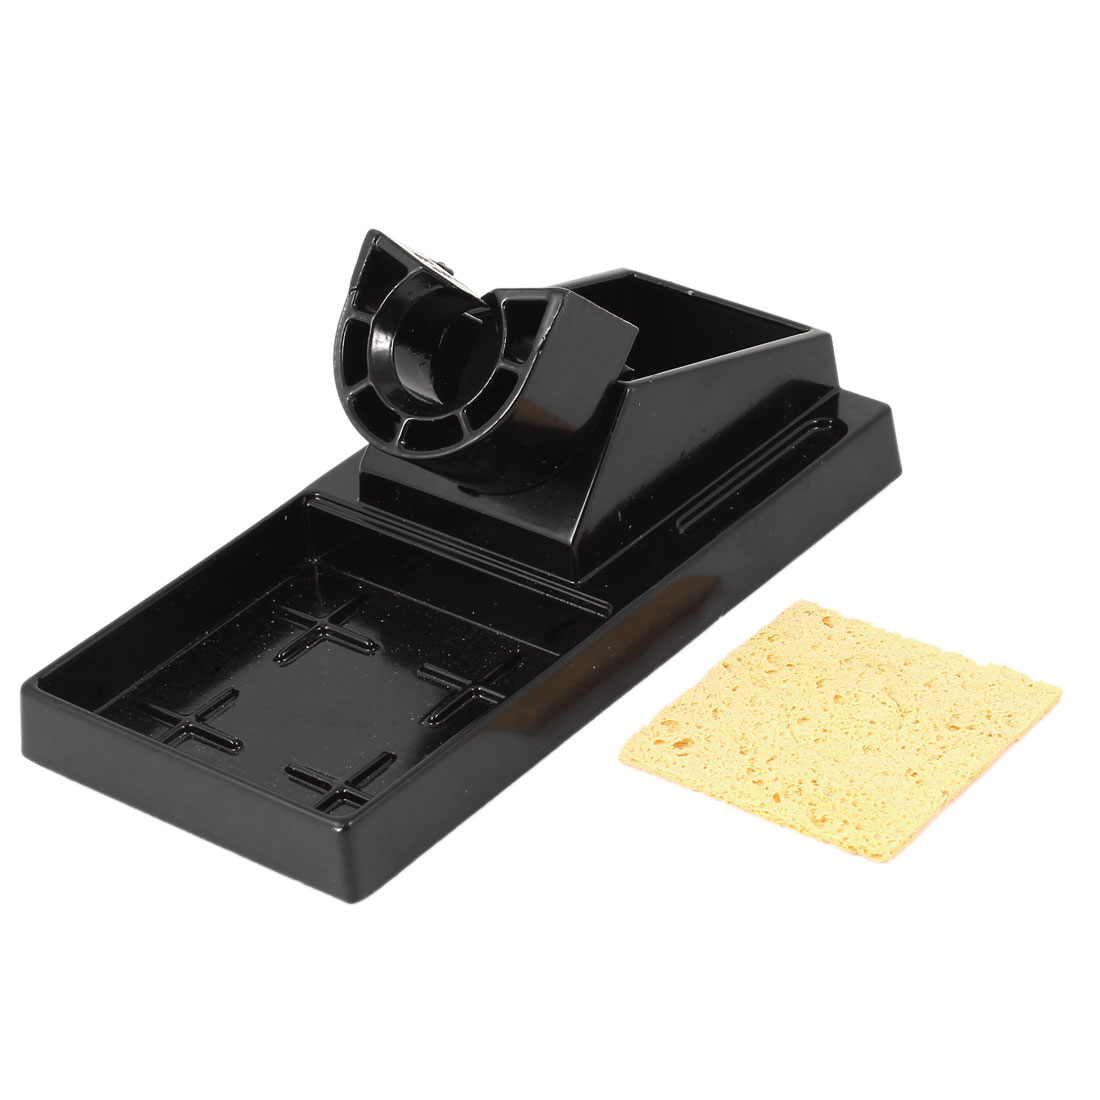 Black Aluminium 16.1 x 8cm Benchtop Base Stand Holder for Soldering Iron